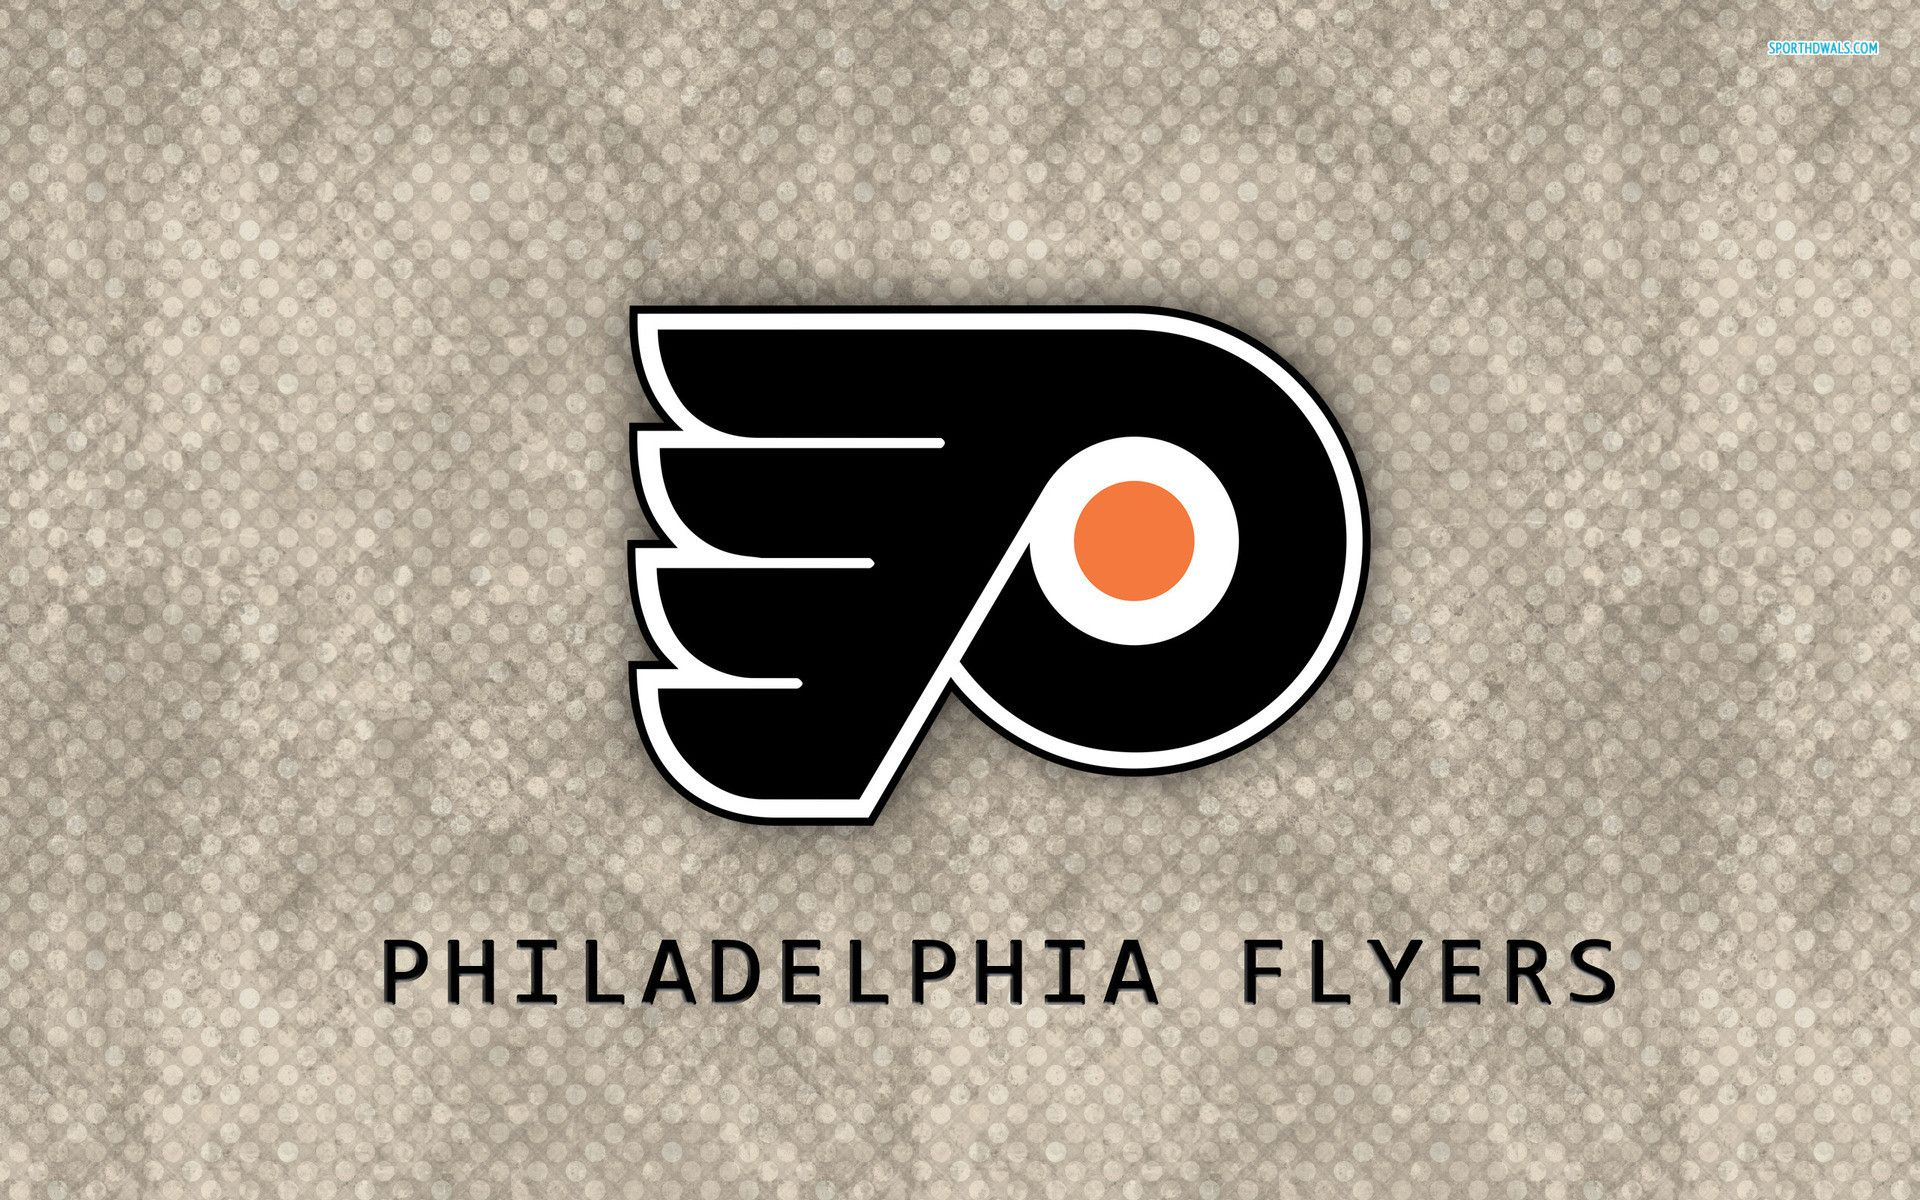 Philadelphia Flyers Desktop Wallpapers - Wallpaper Cave